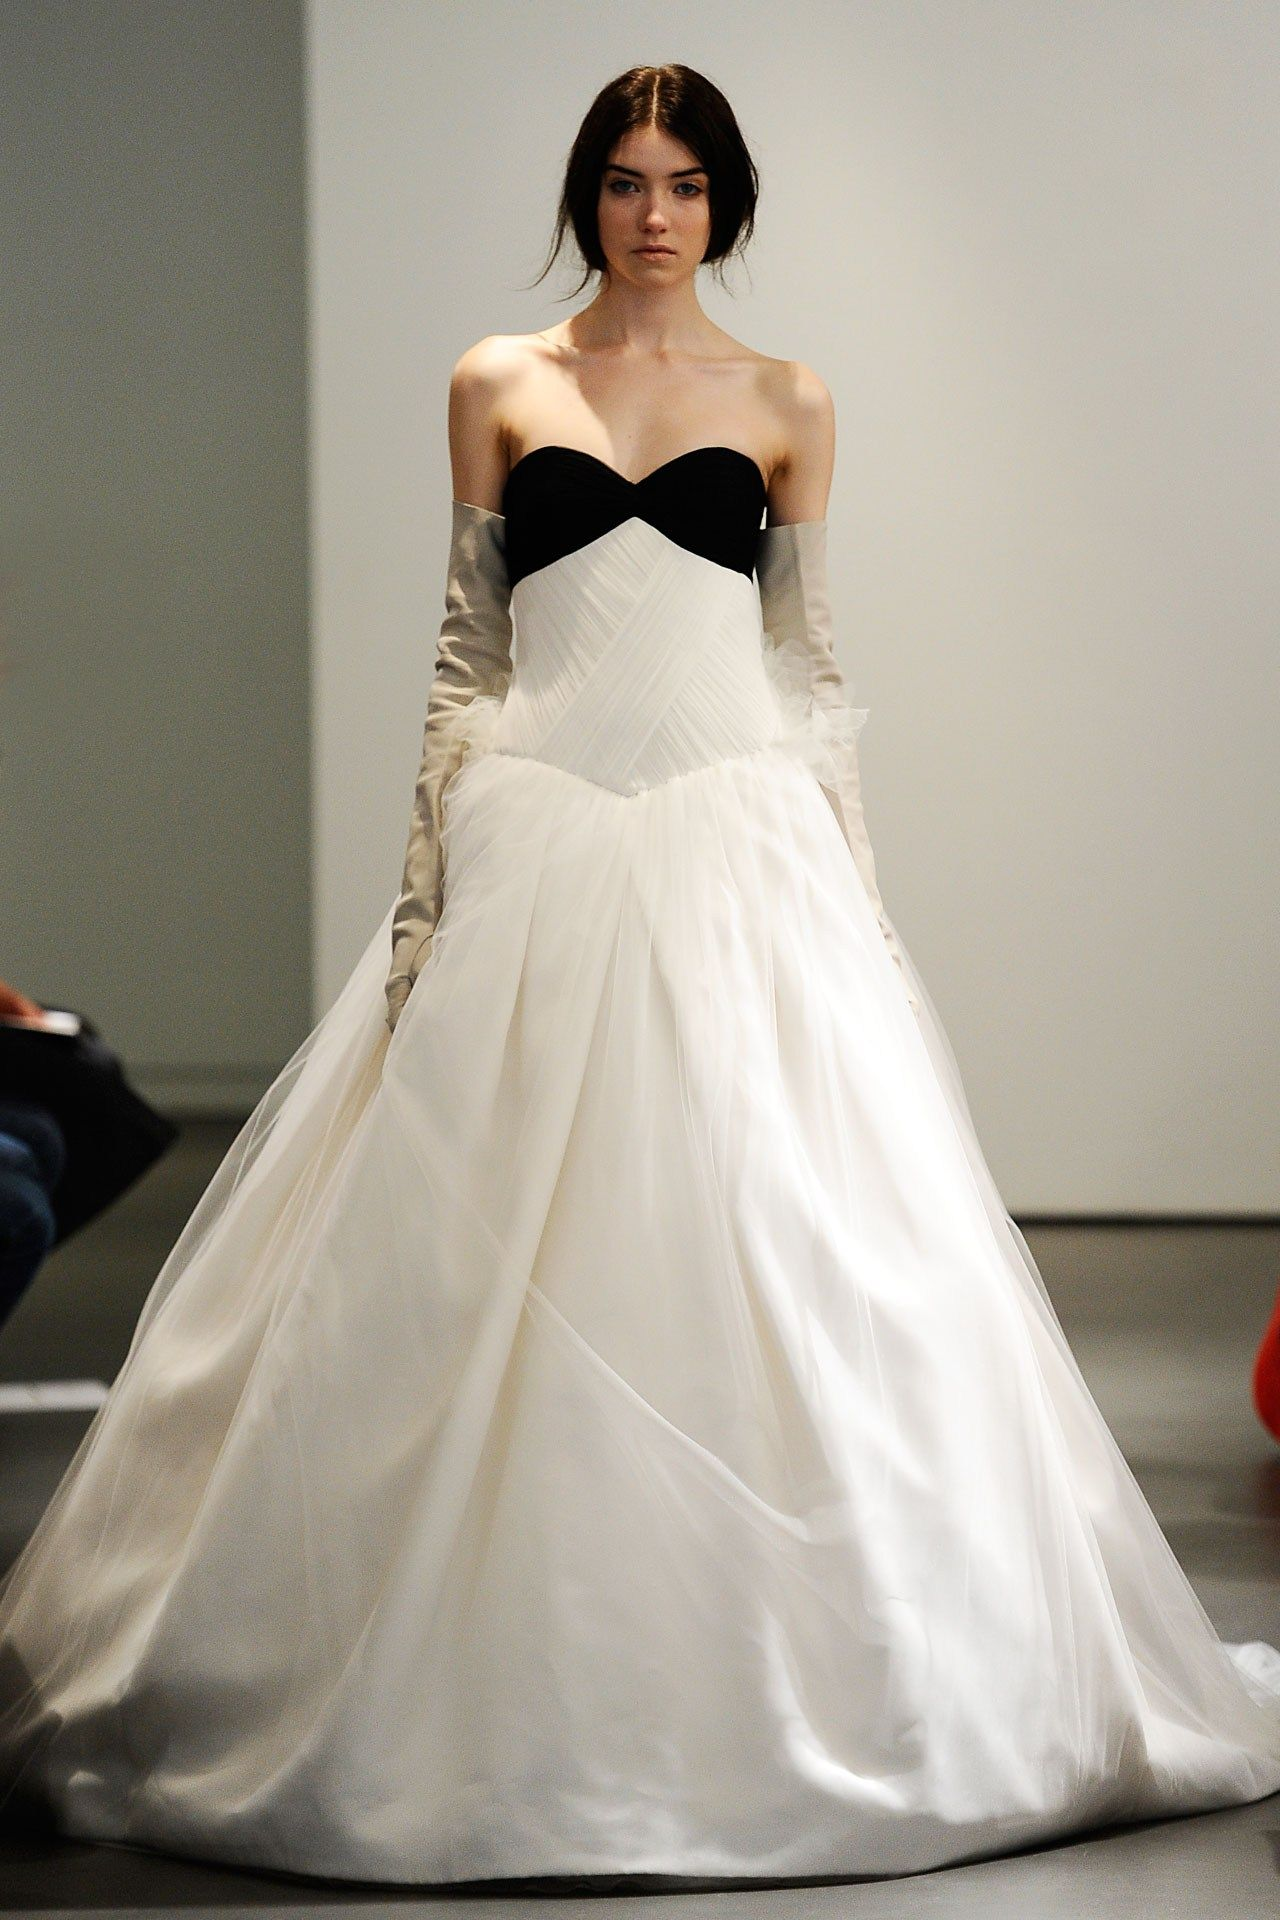 A model walks during the Vera Wang Bridal spring/summer 2014 show, as part of the Bridal Market catwalk shows in New York.